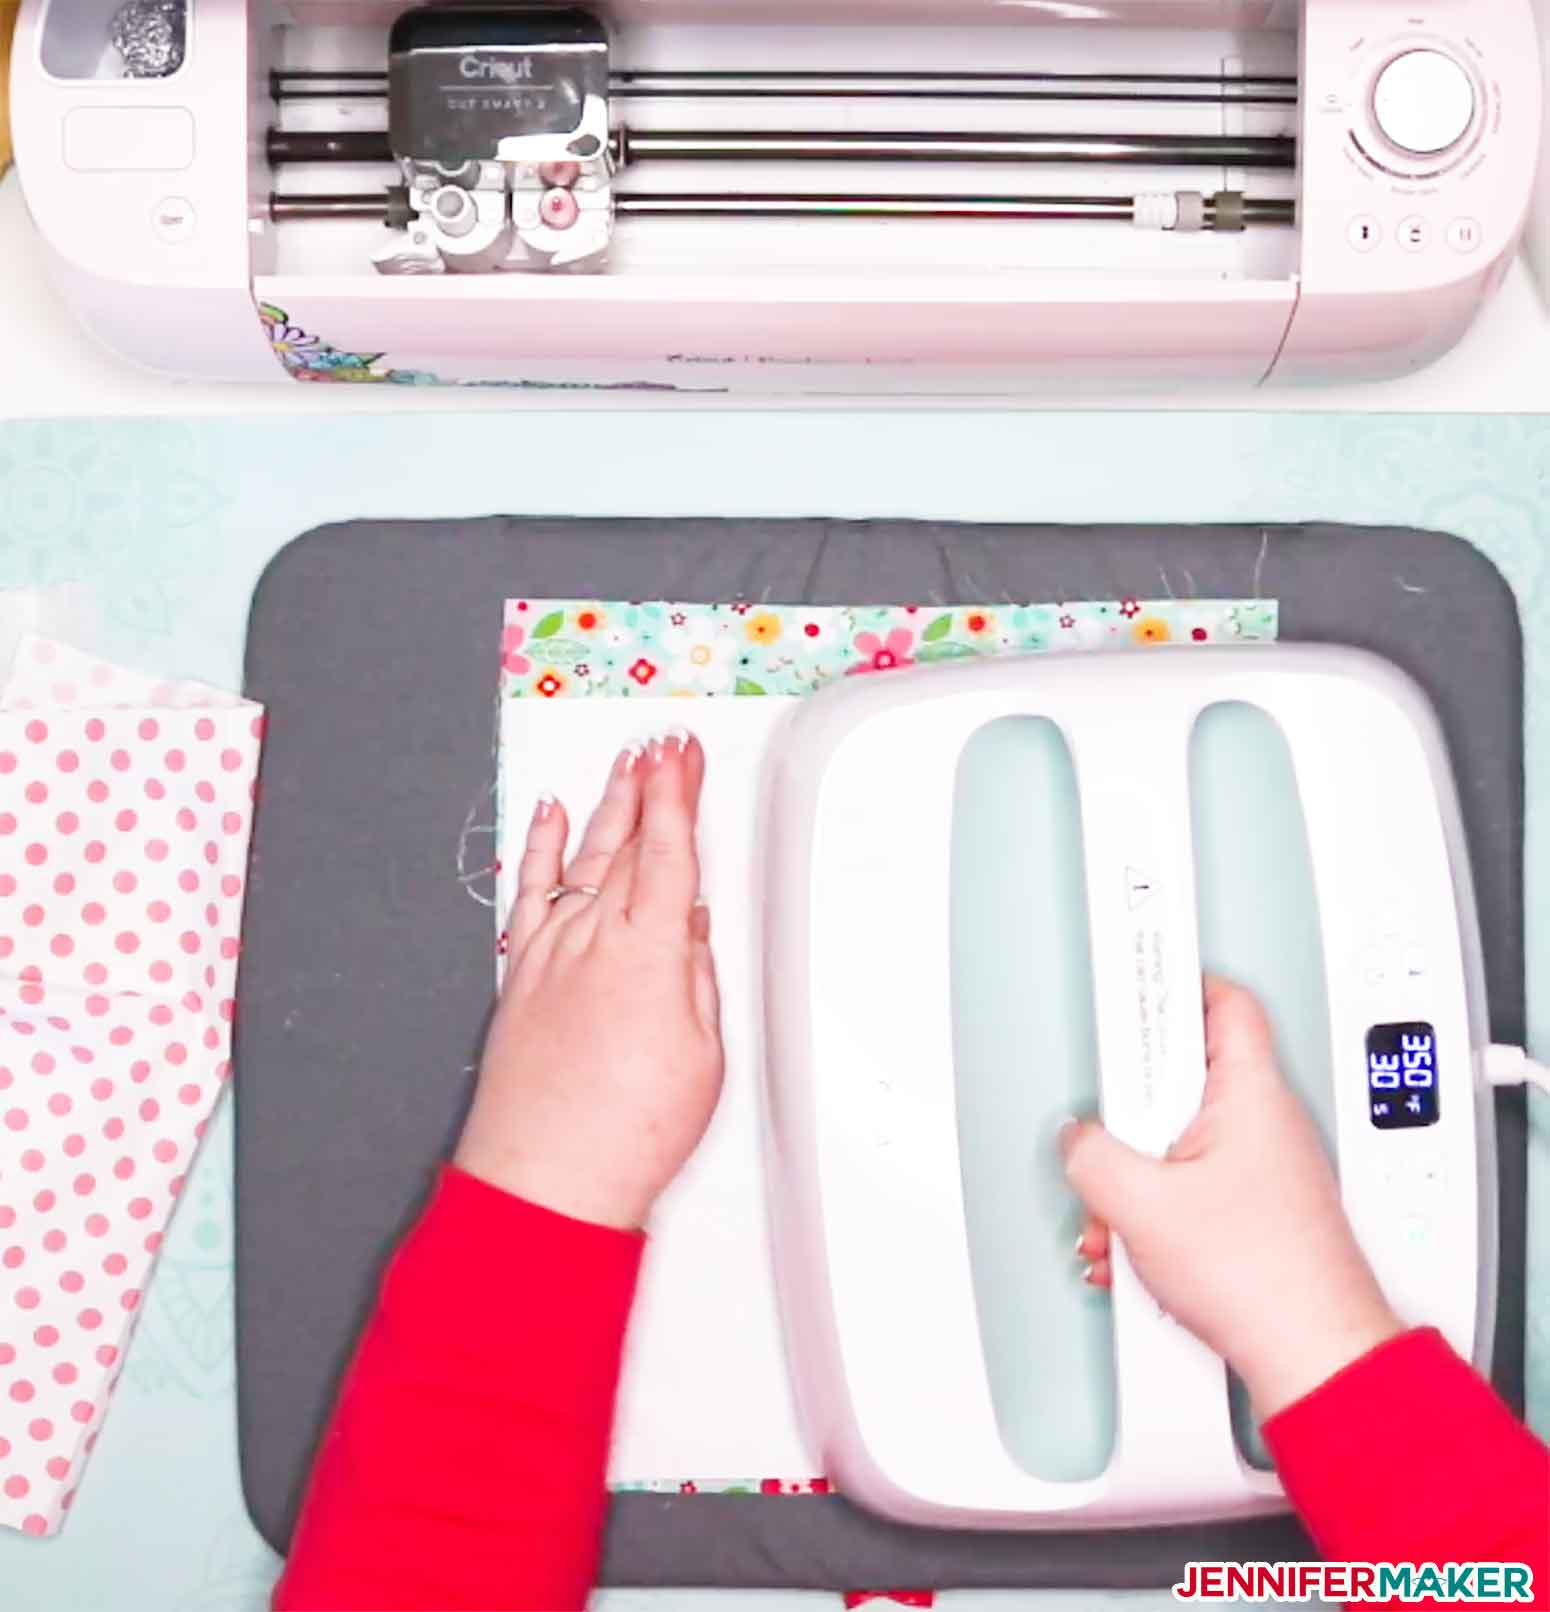 Bonding Freezer paper to a piece of woven cotton so it can be cut on a Cricut Explore